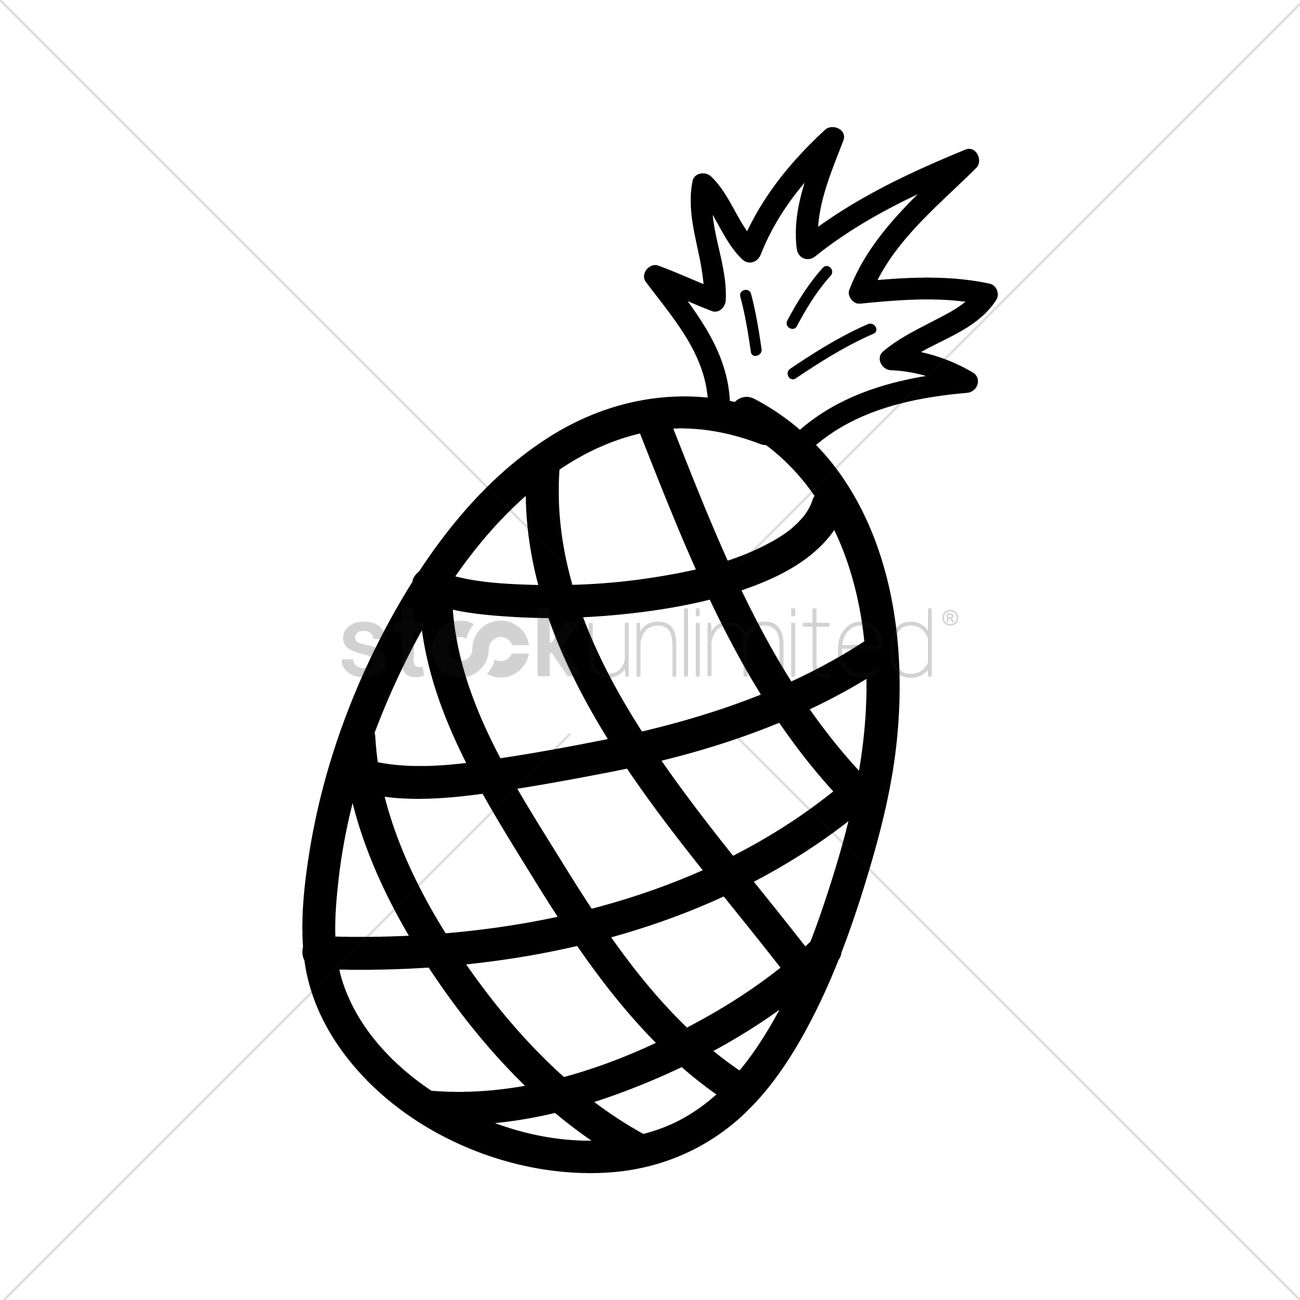 Pineapple Vector Image - 1460674 | StockUnlimited for Clipart Pineapple Black And White  174mzq